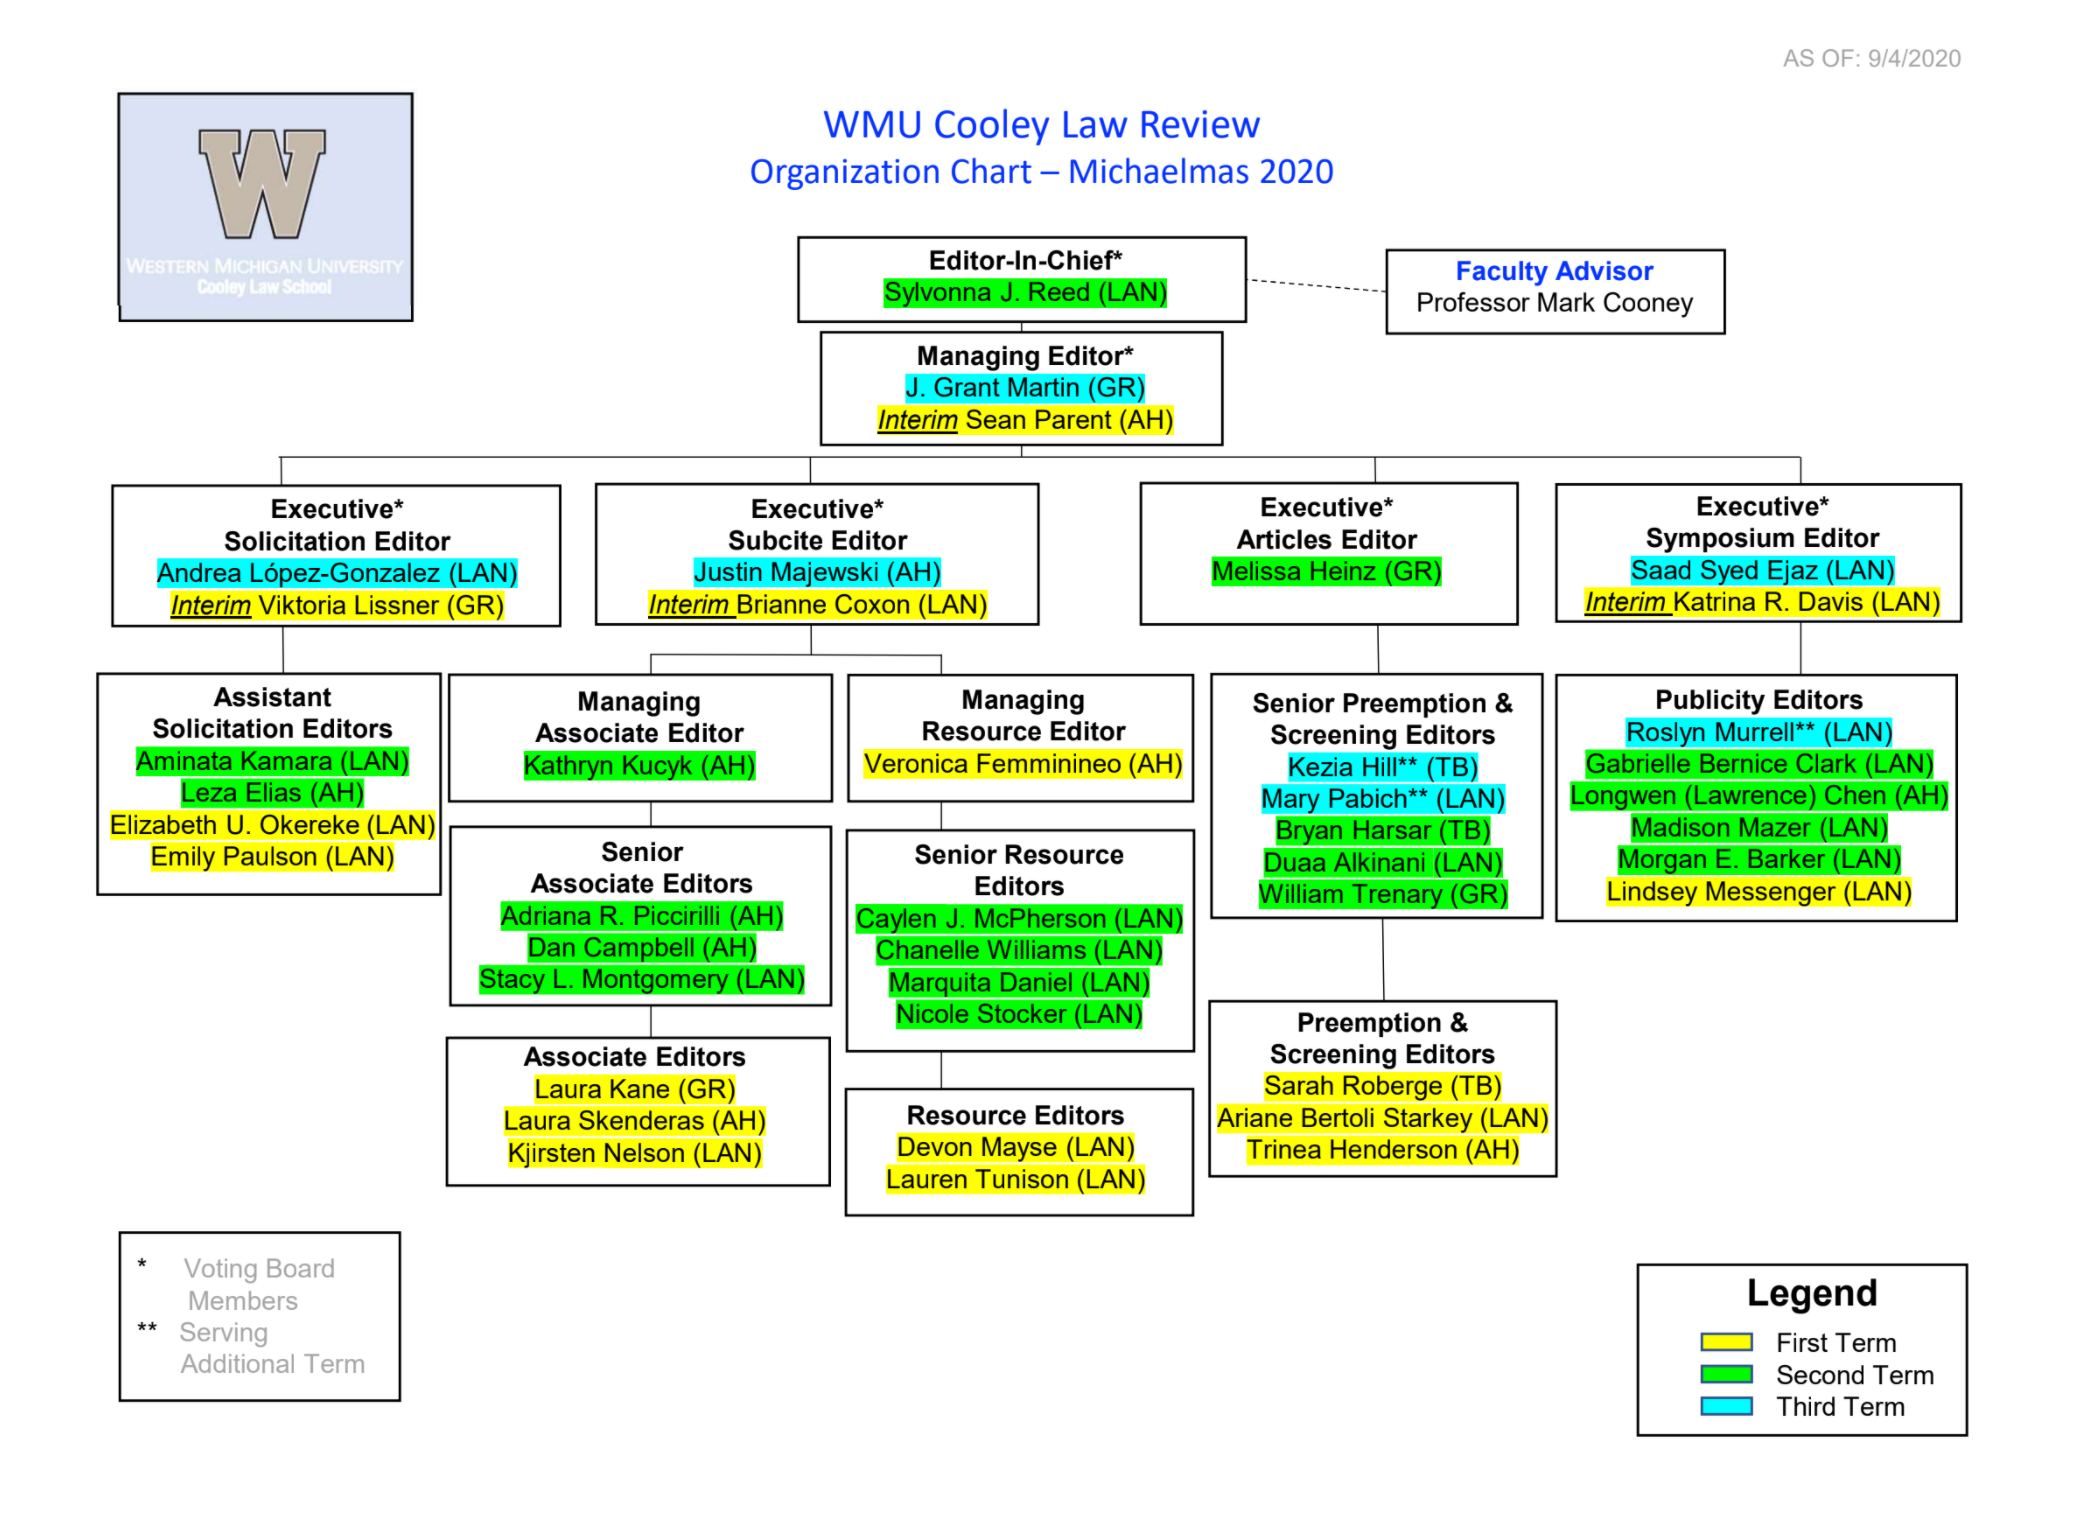 Law Review Organizational Chart